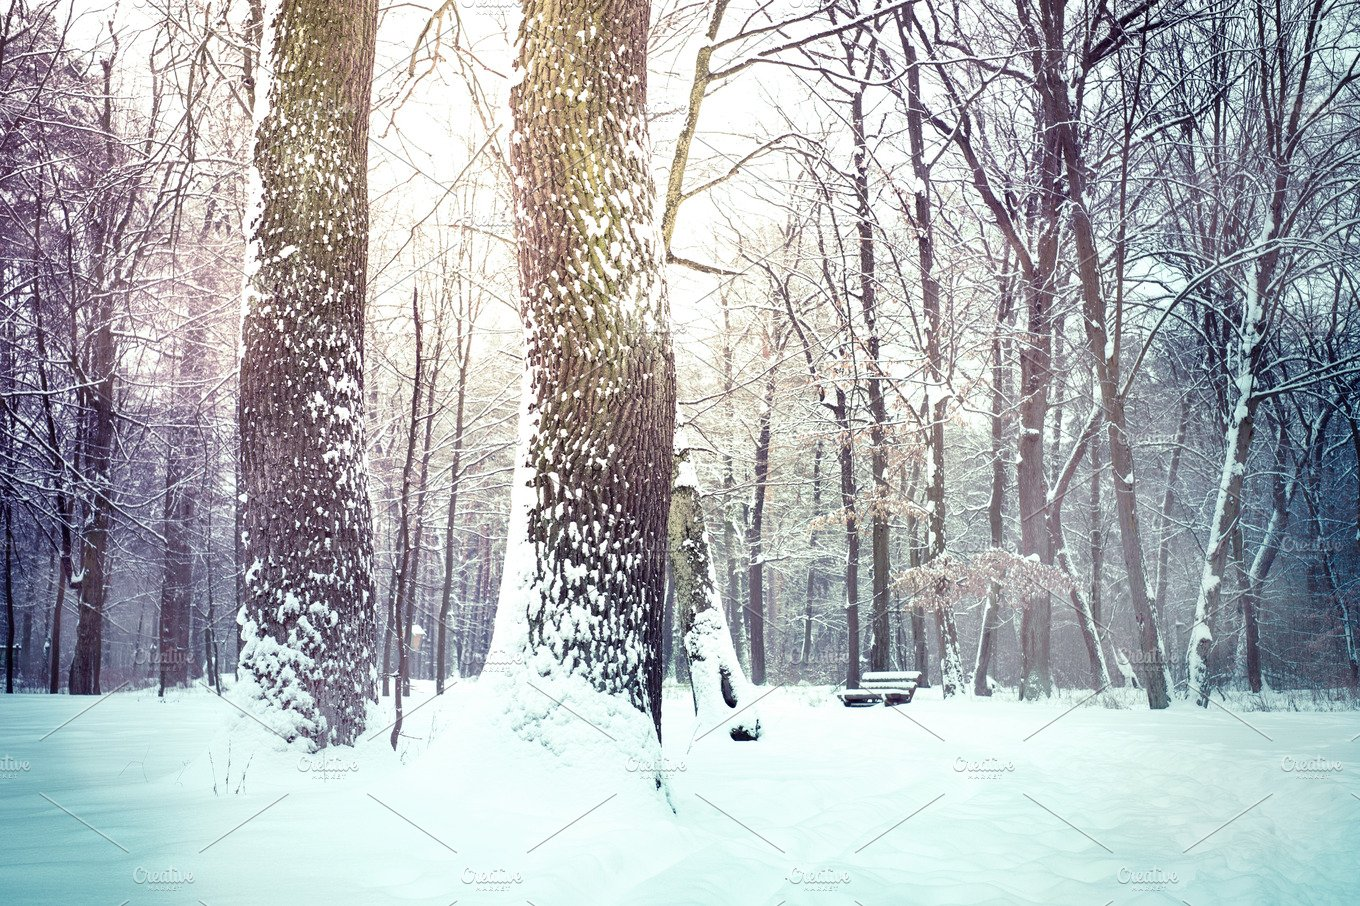 Winter Nature Snowy Landscape Outdoor Background Nature